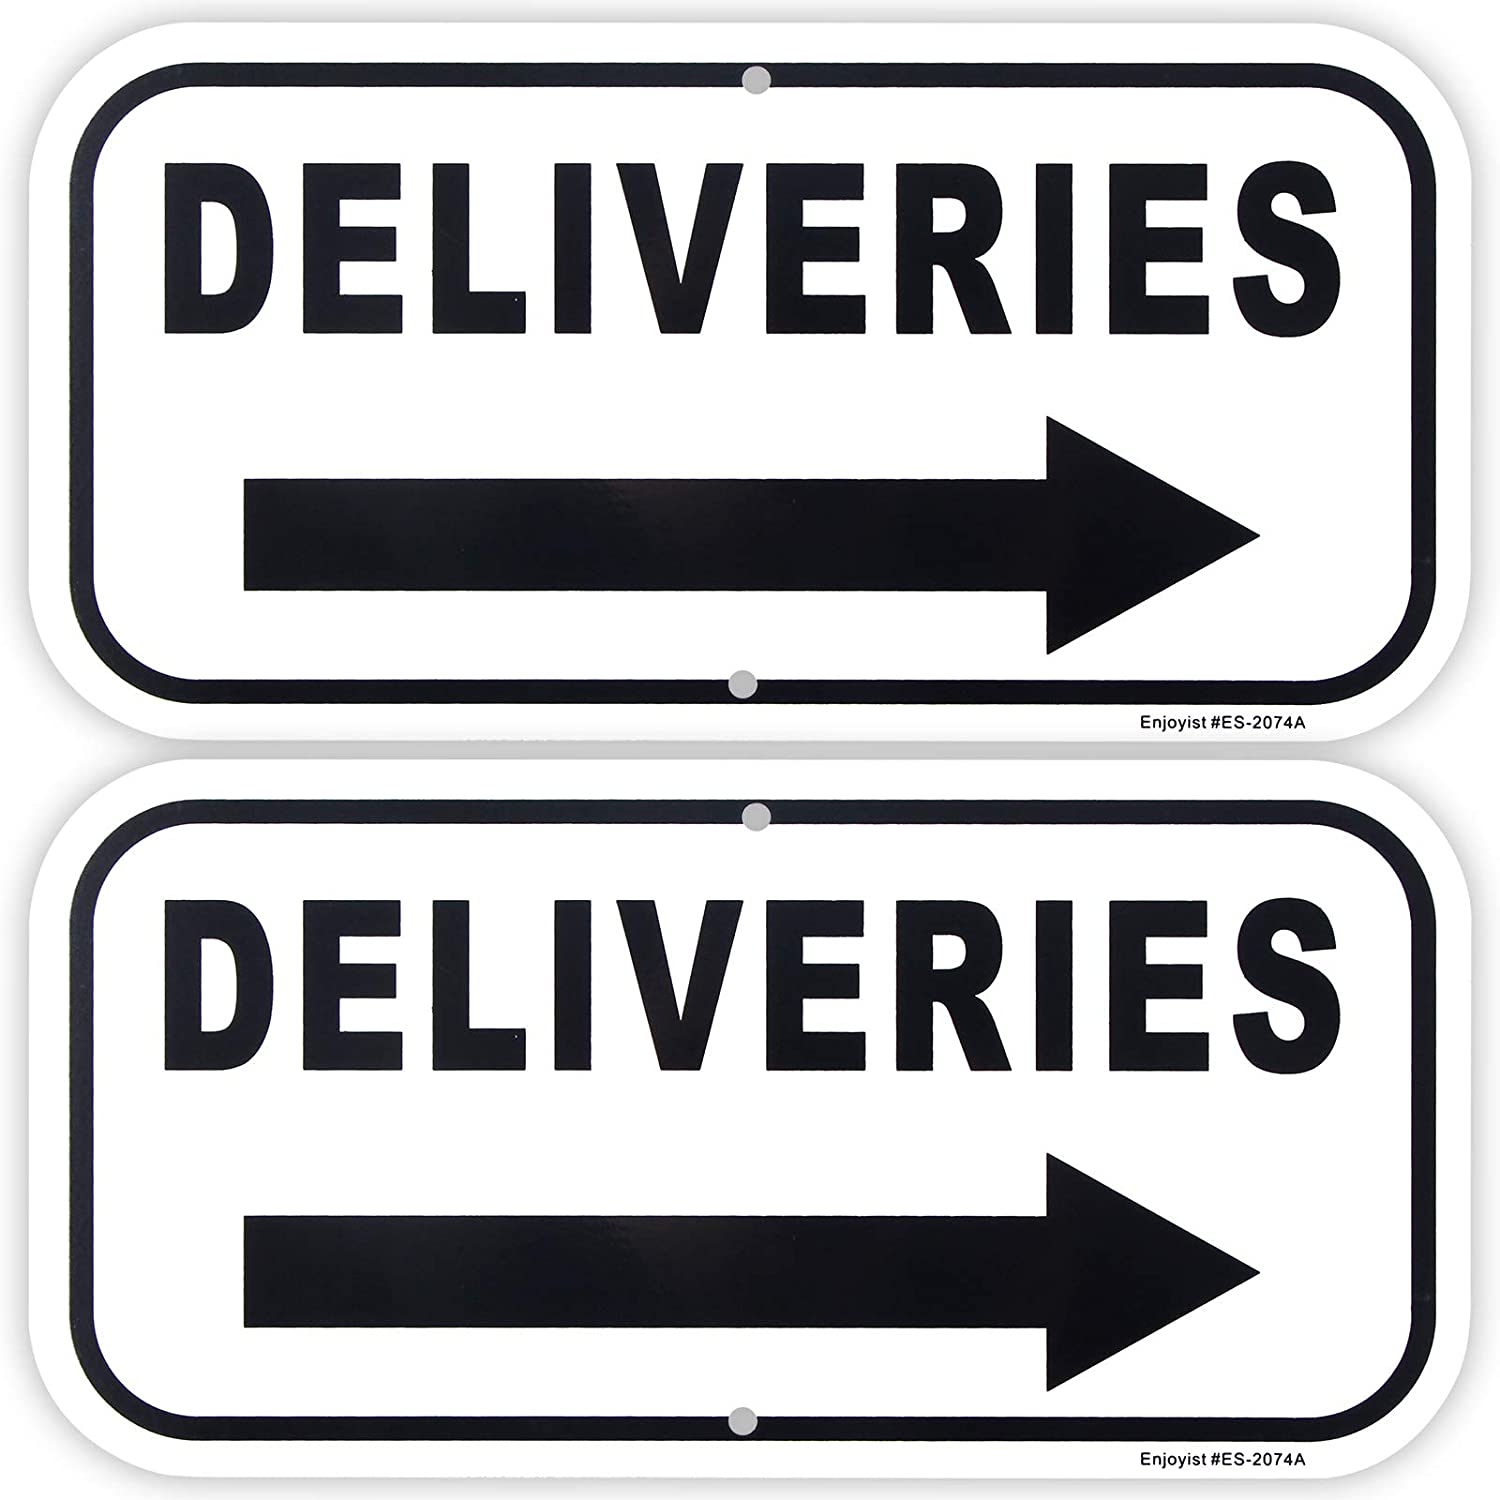 Selling and selling Enjoyist 2-Pack Deliveries Popular brand in the world with Right Arrow 12